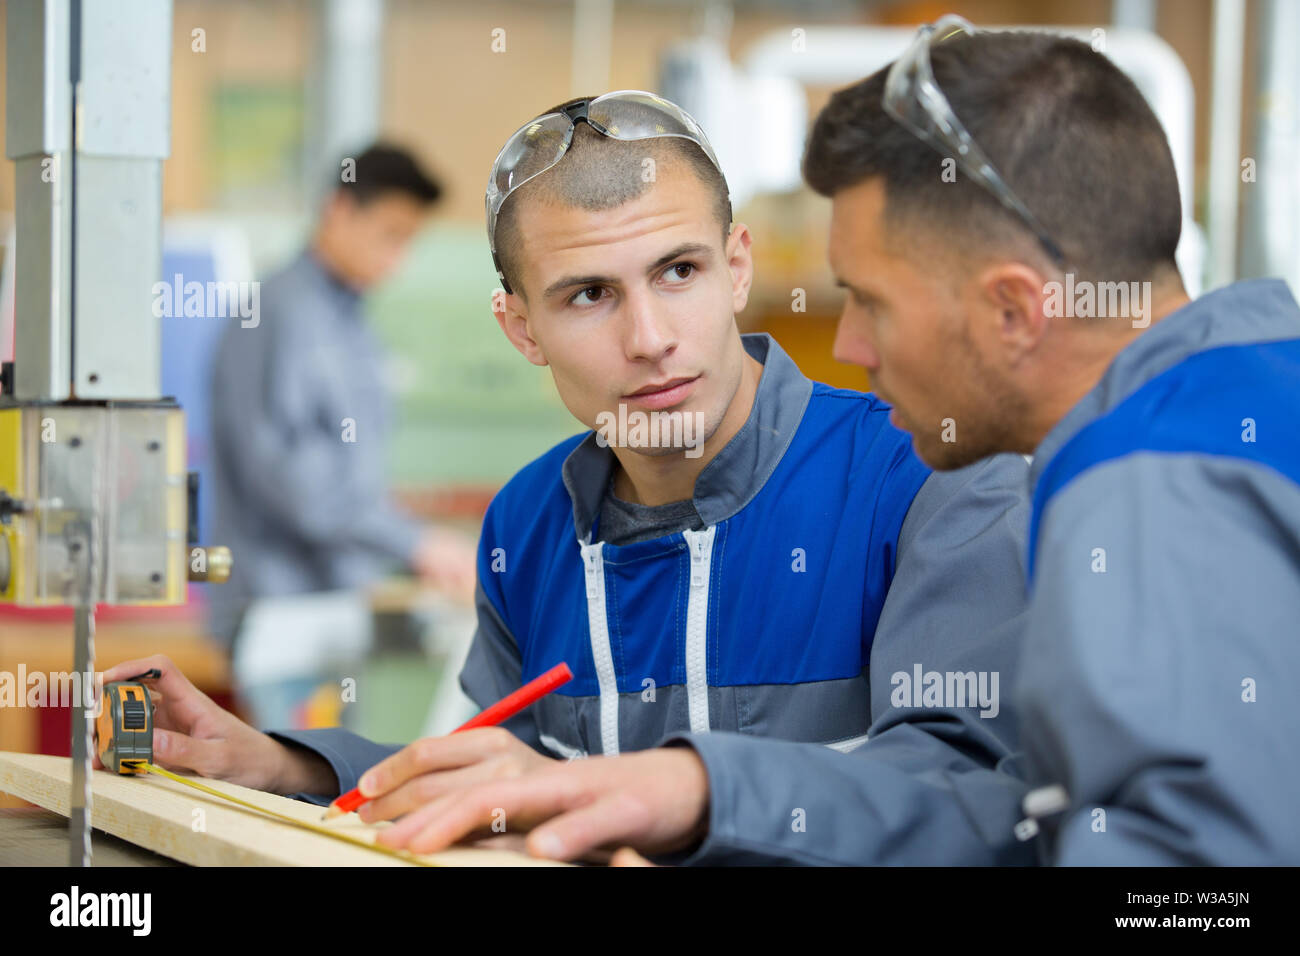 apprentice makes the measurements on the board - Stock Image